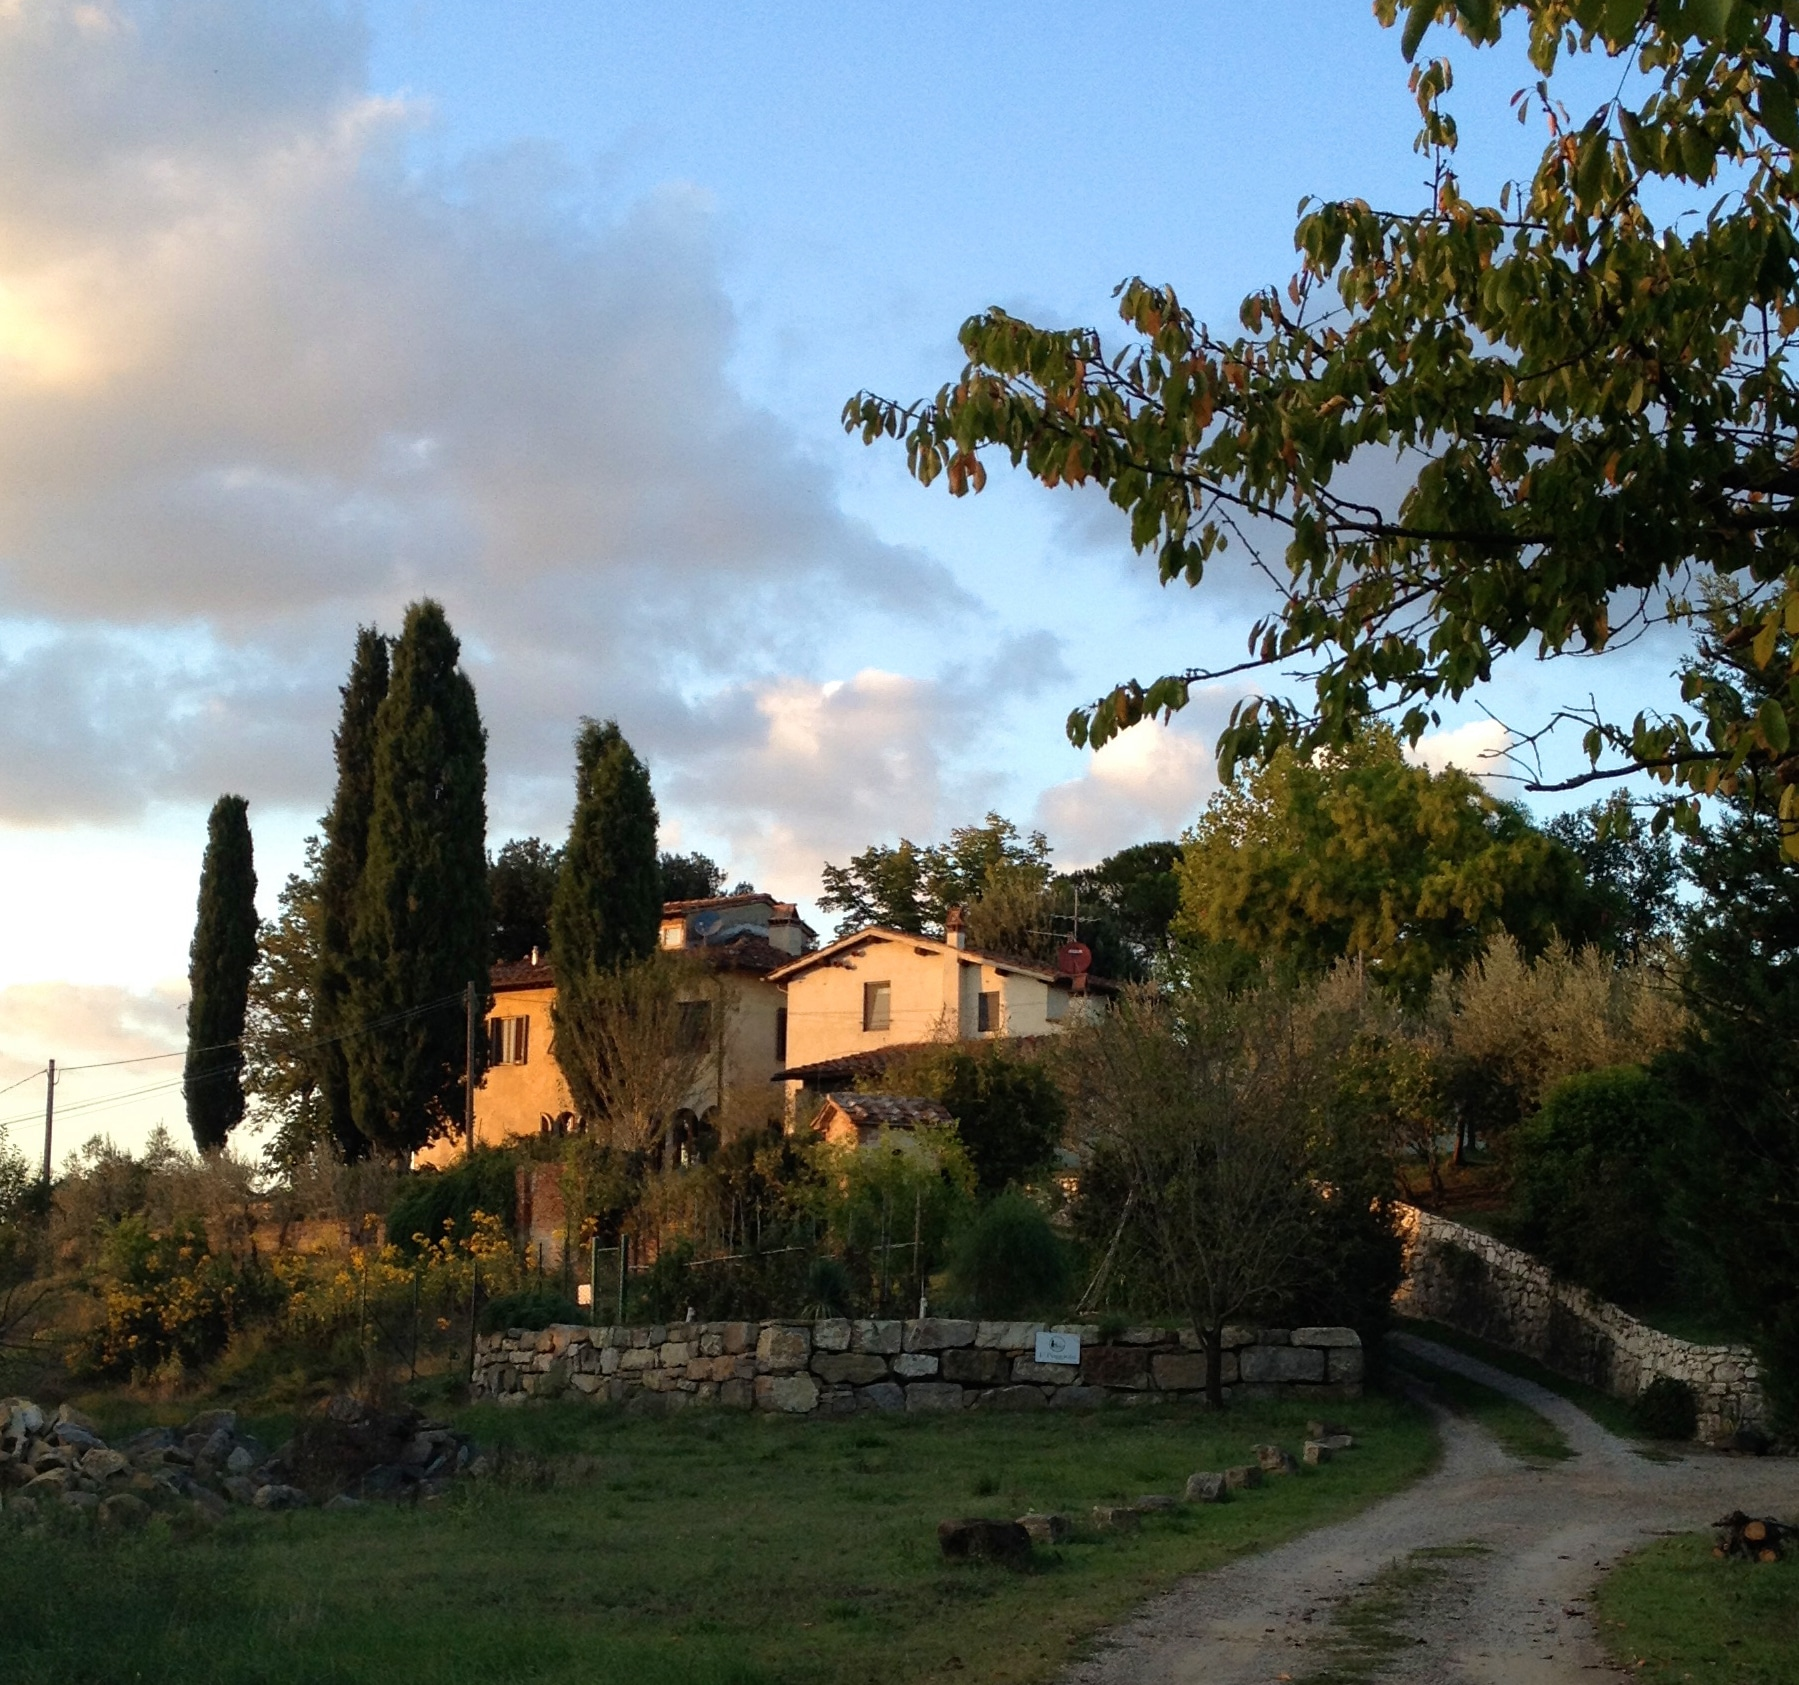 Evening walks are delightful, the light seems unique to Tuscany